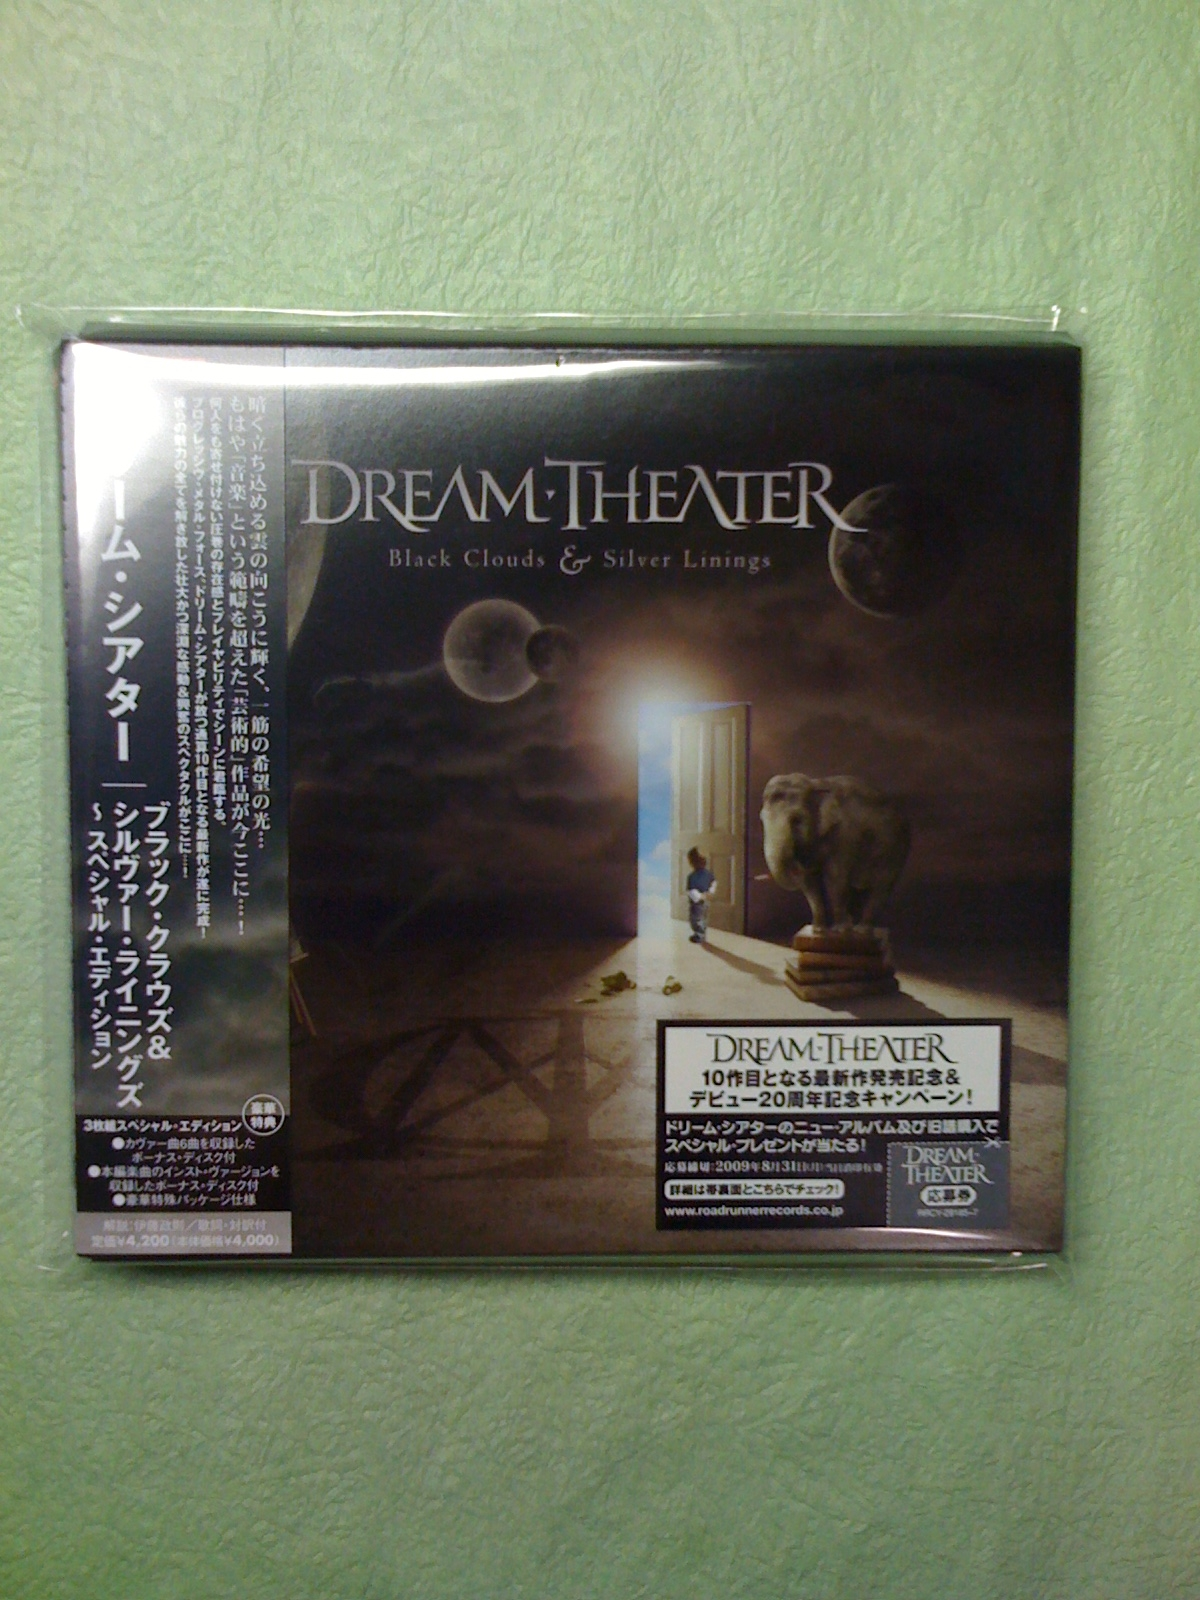 DREAM THEATER / Black Clouds & Silver Linings